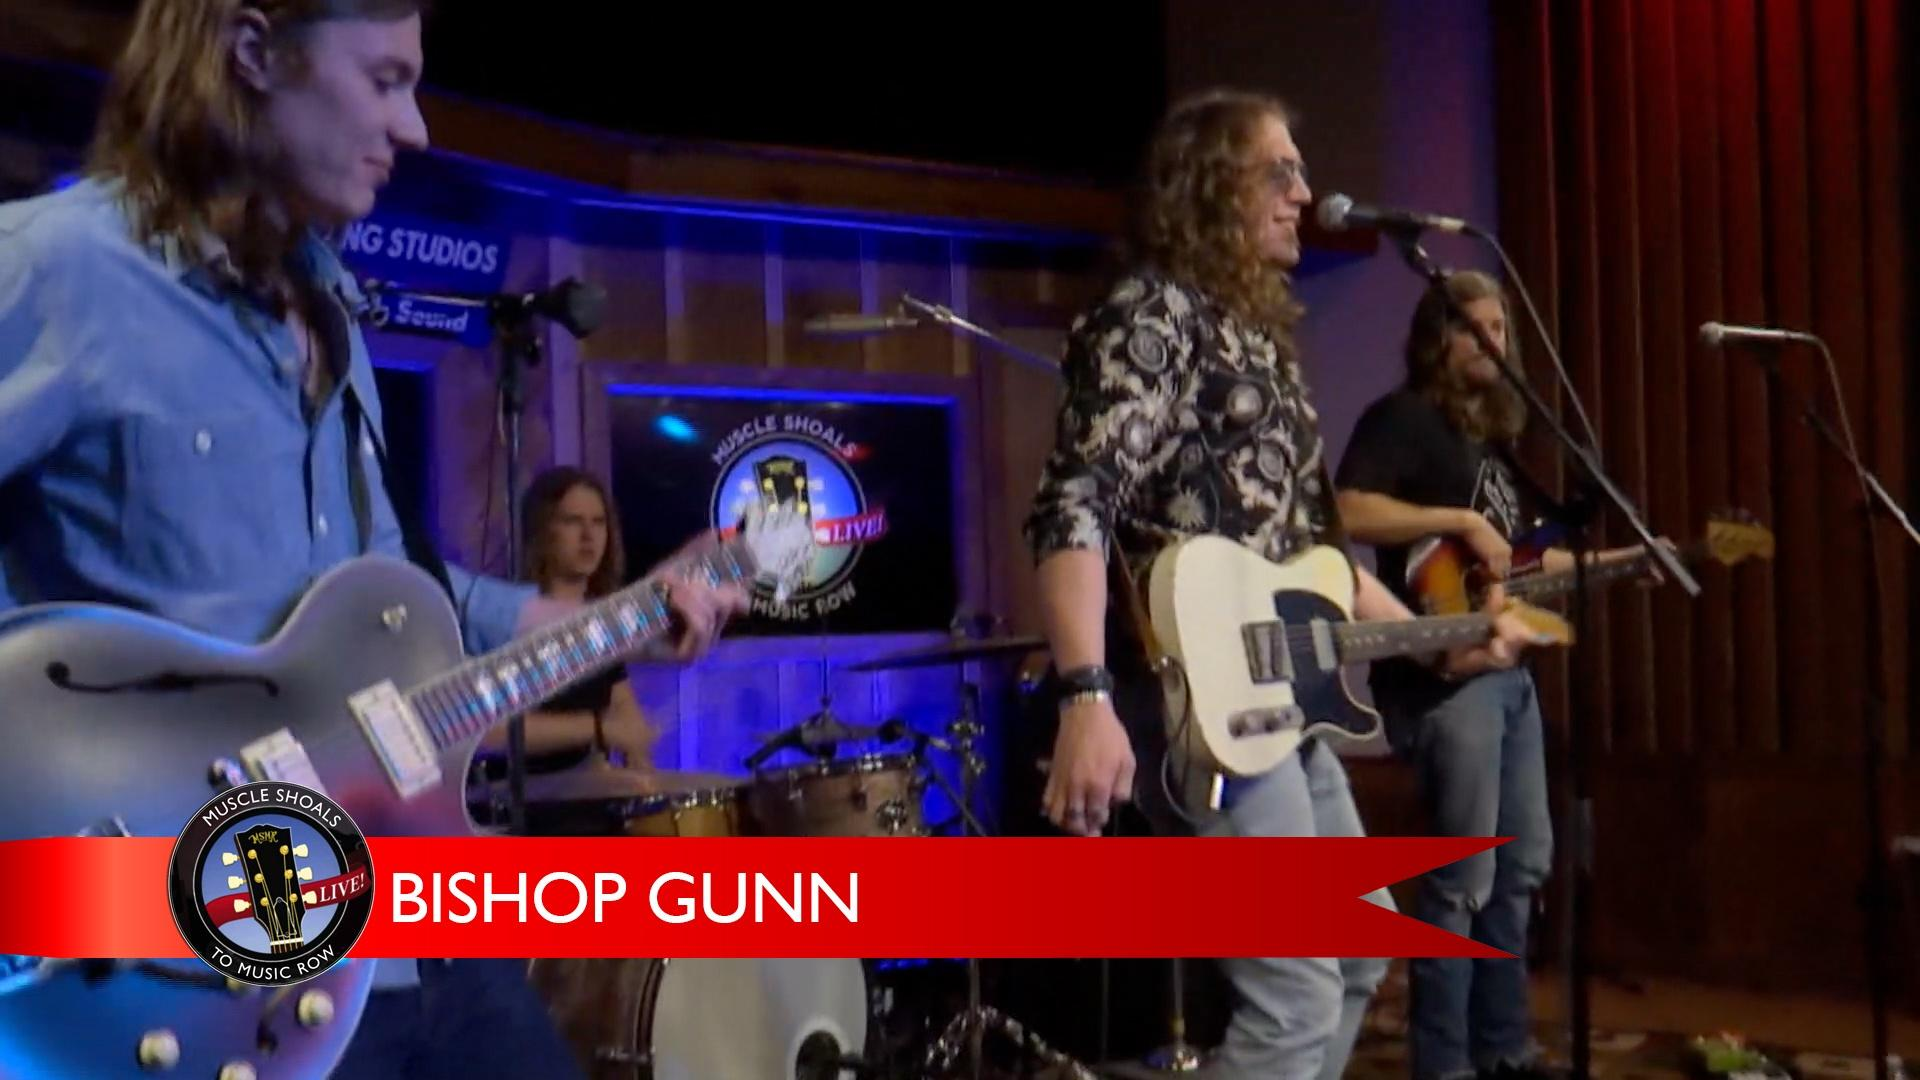 Bishop Gunn | Season 2 Episode 17 | Muscle Shoals to Music